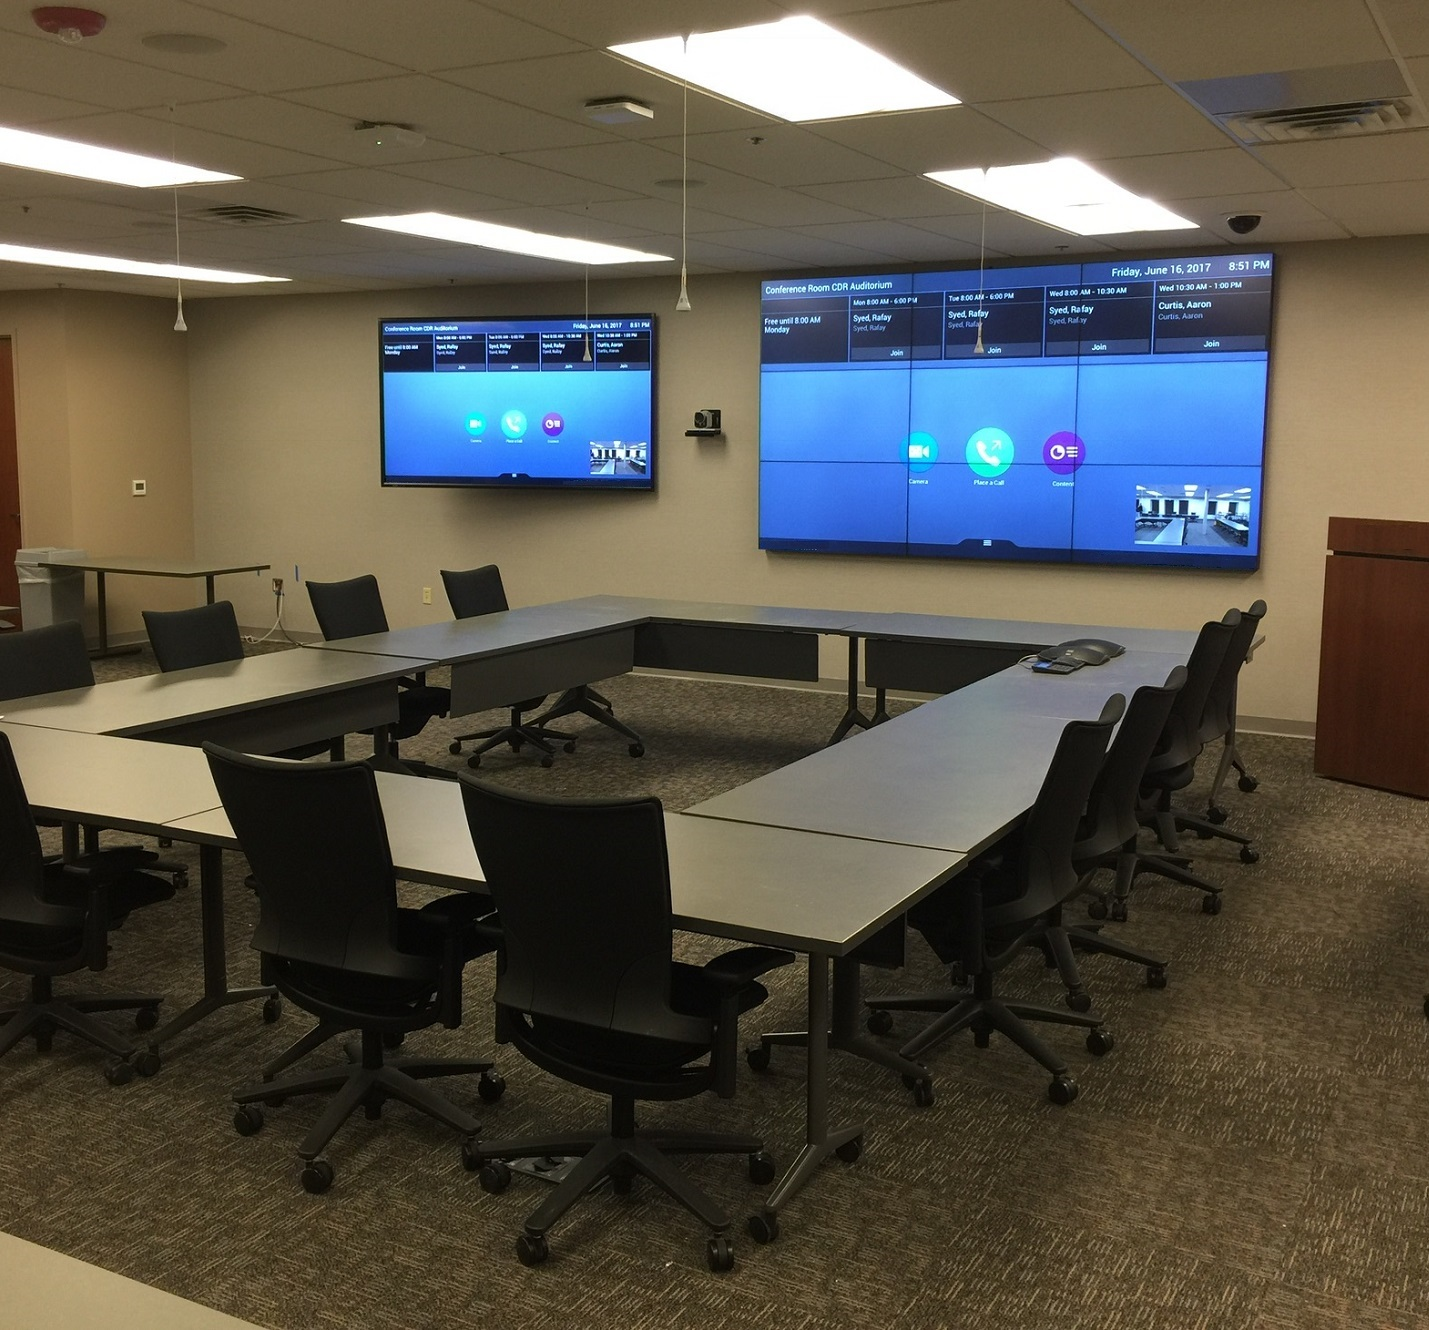 Corporate board room with commercial AV